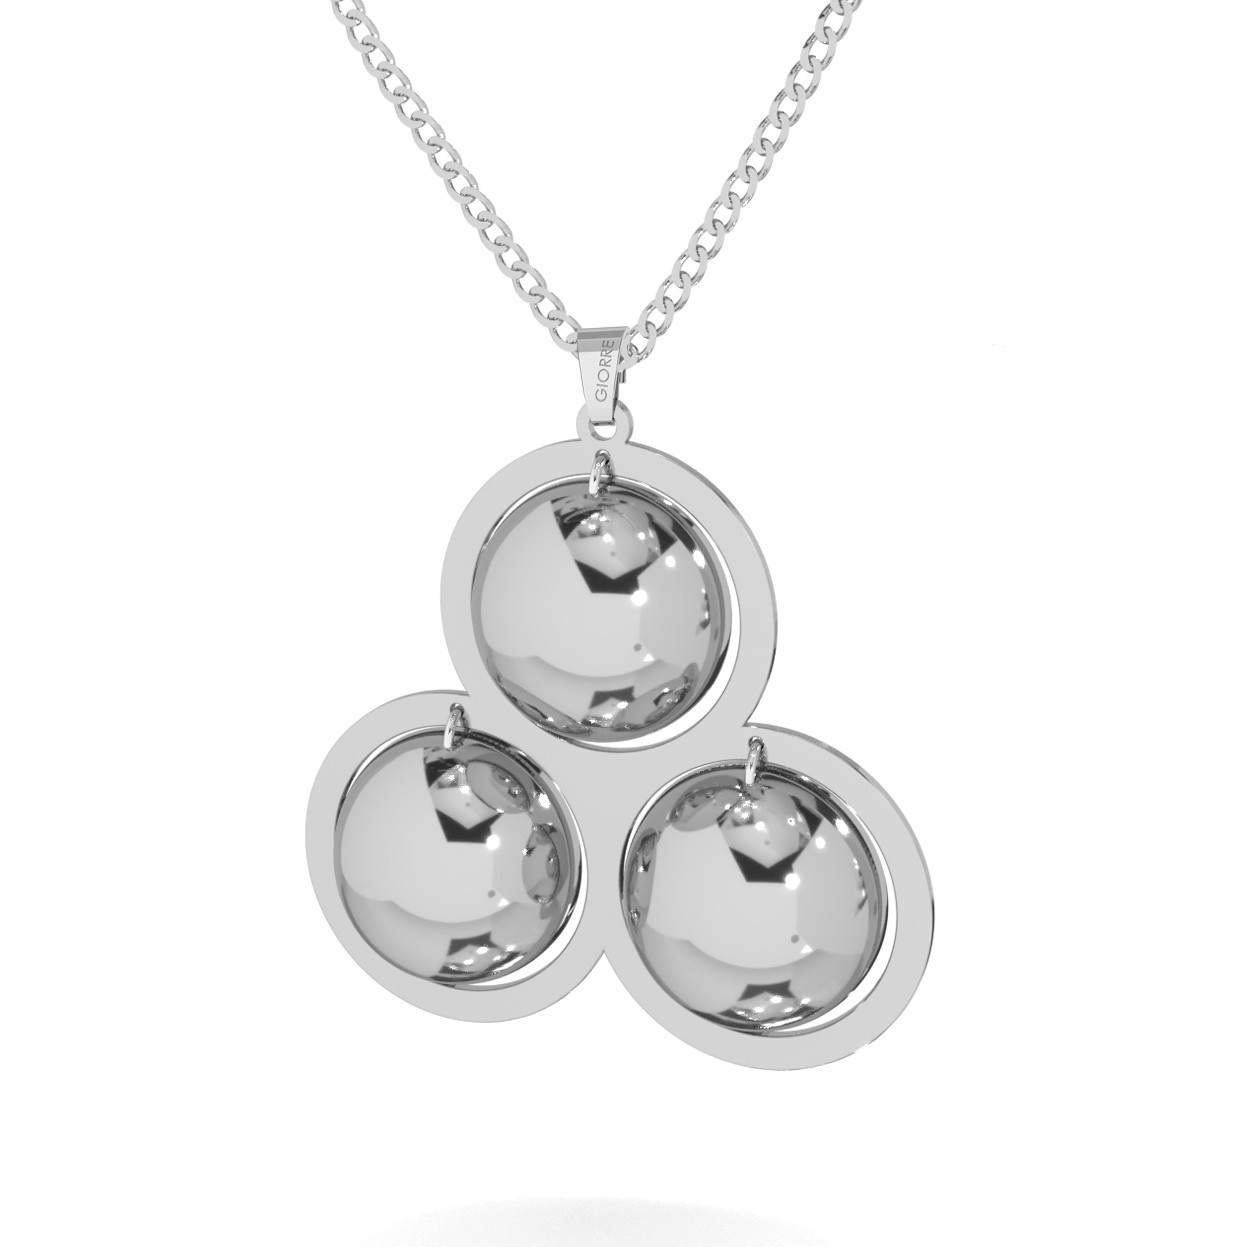 Woman necklace with long pendant sterling silver 925